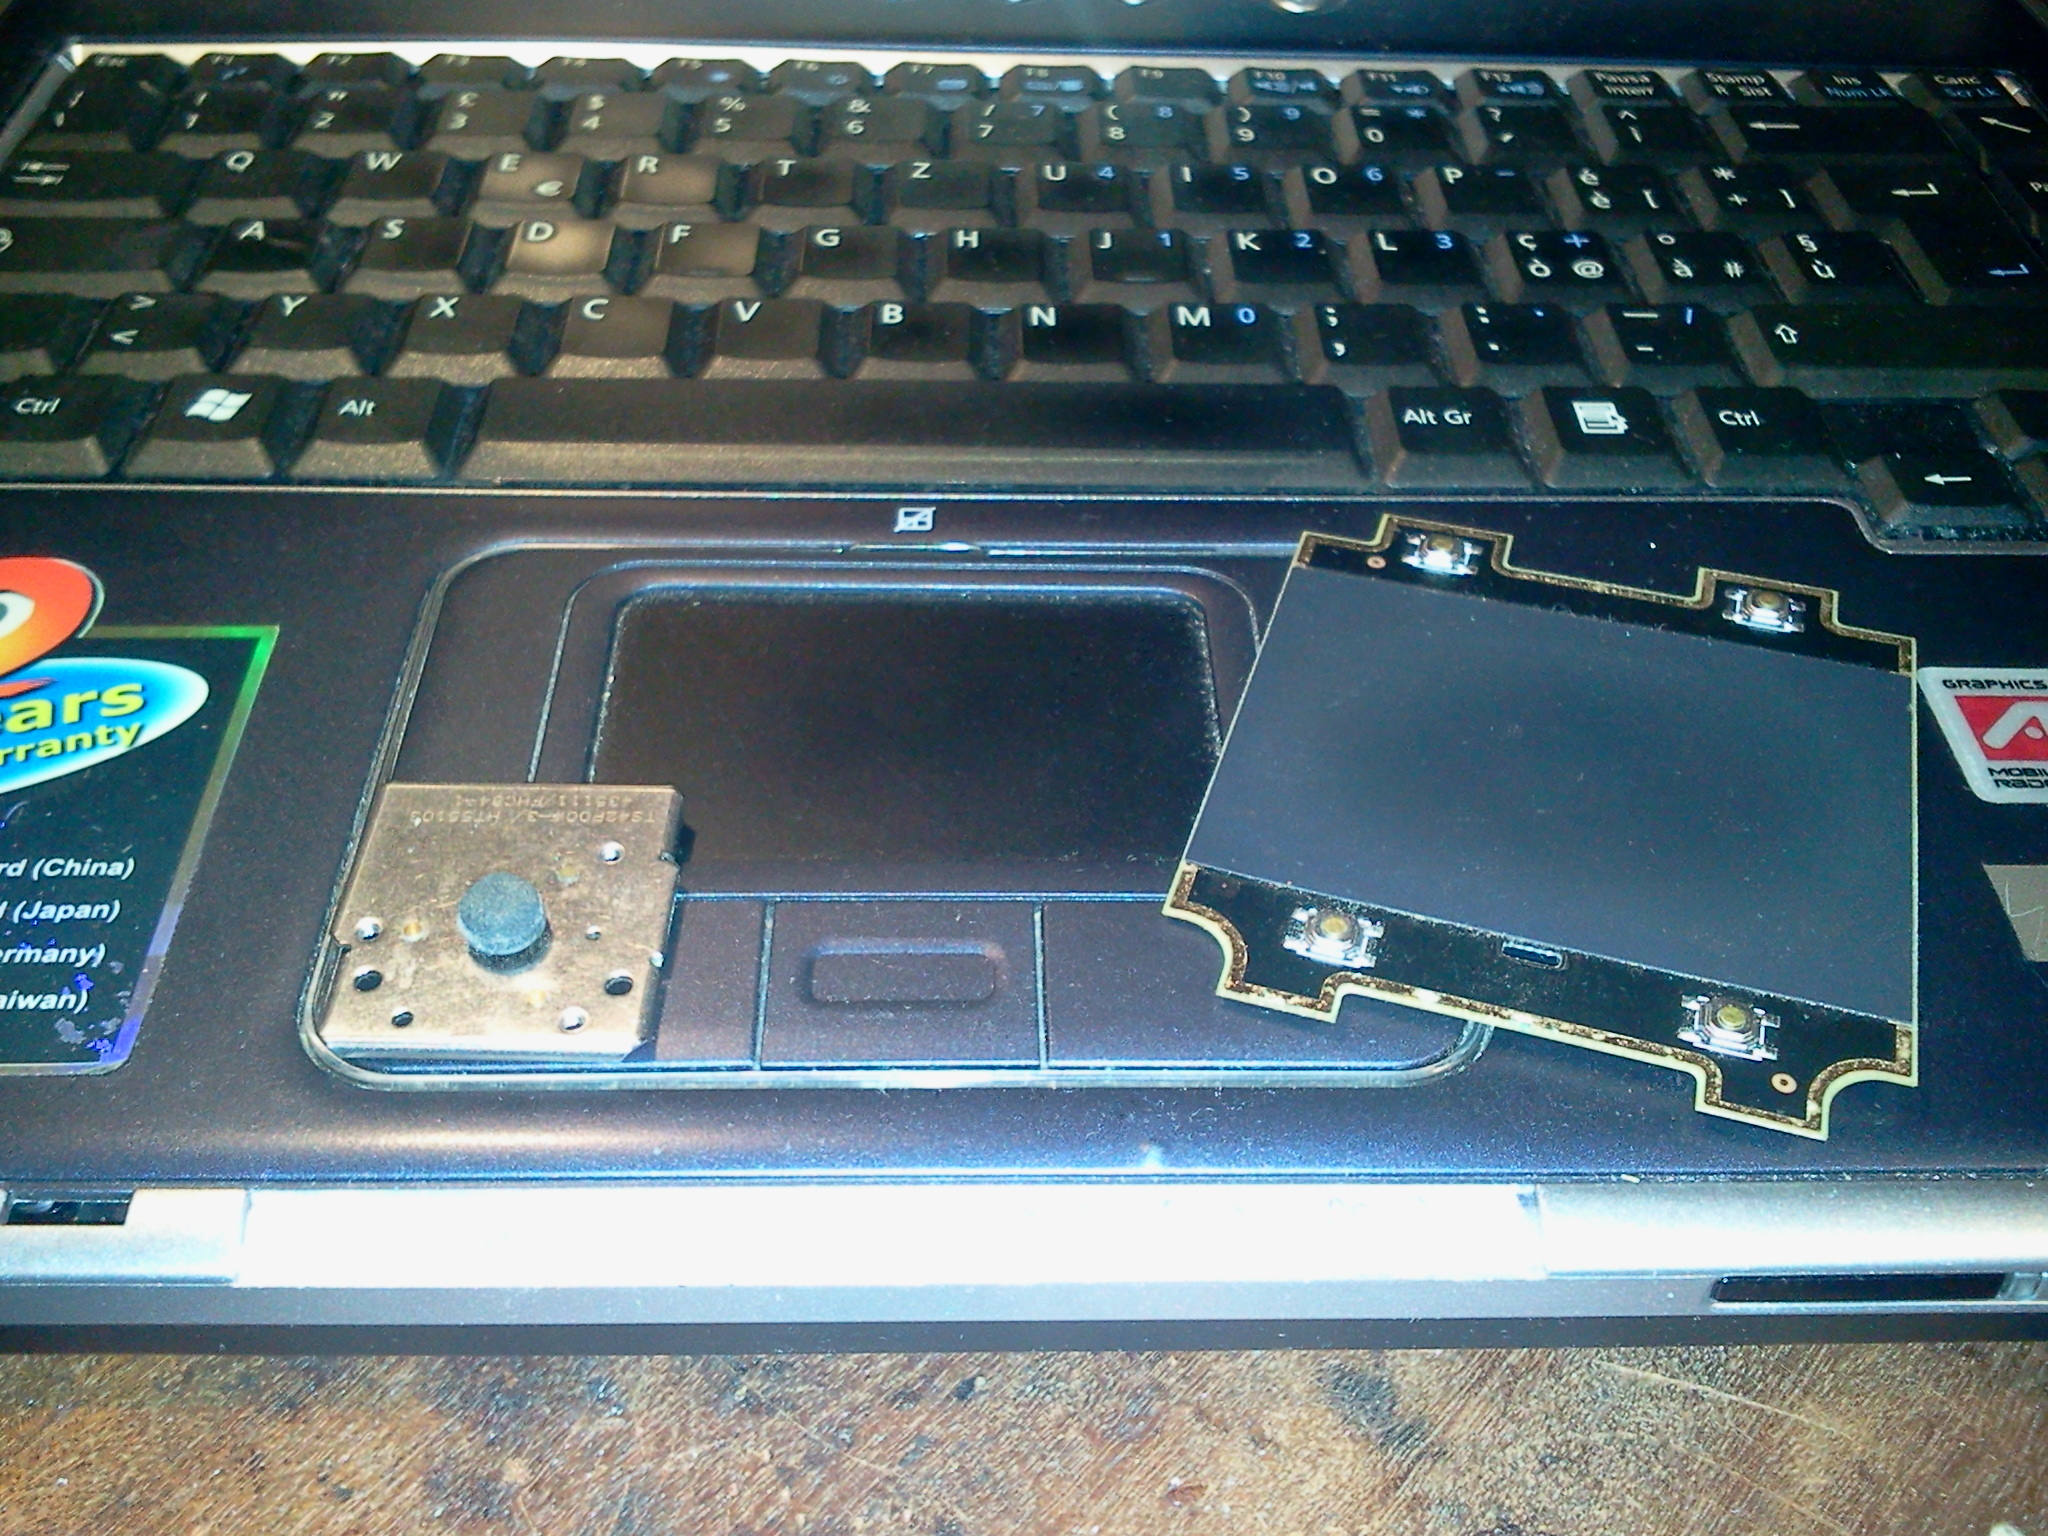 Picture of Laptoprecycling-Touchpad